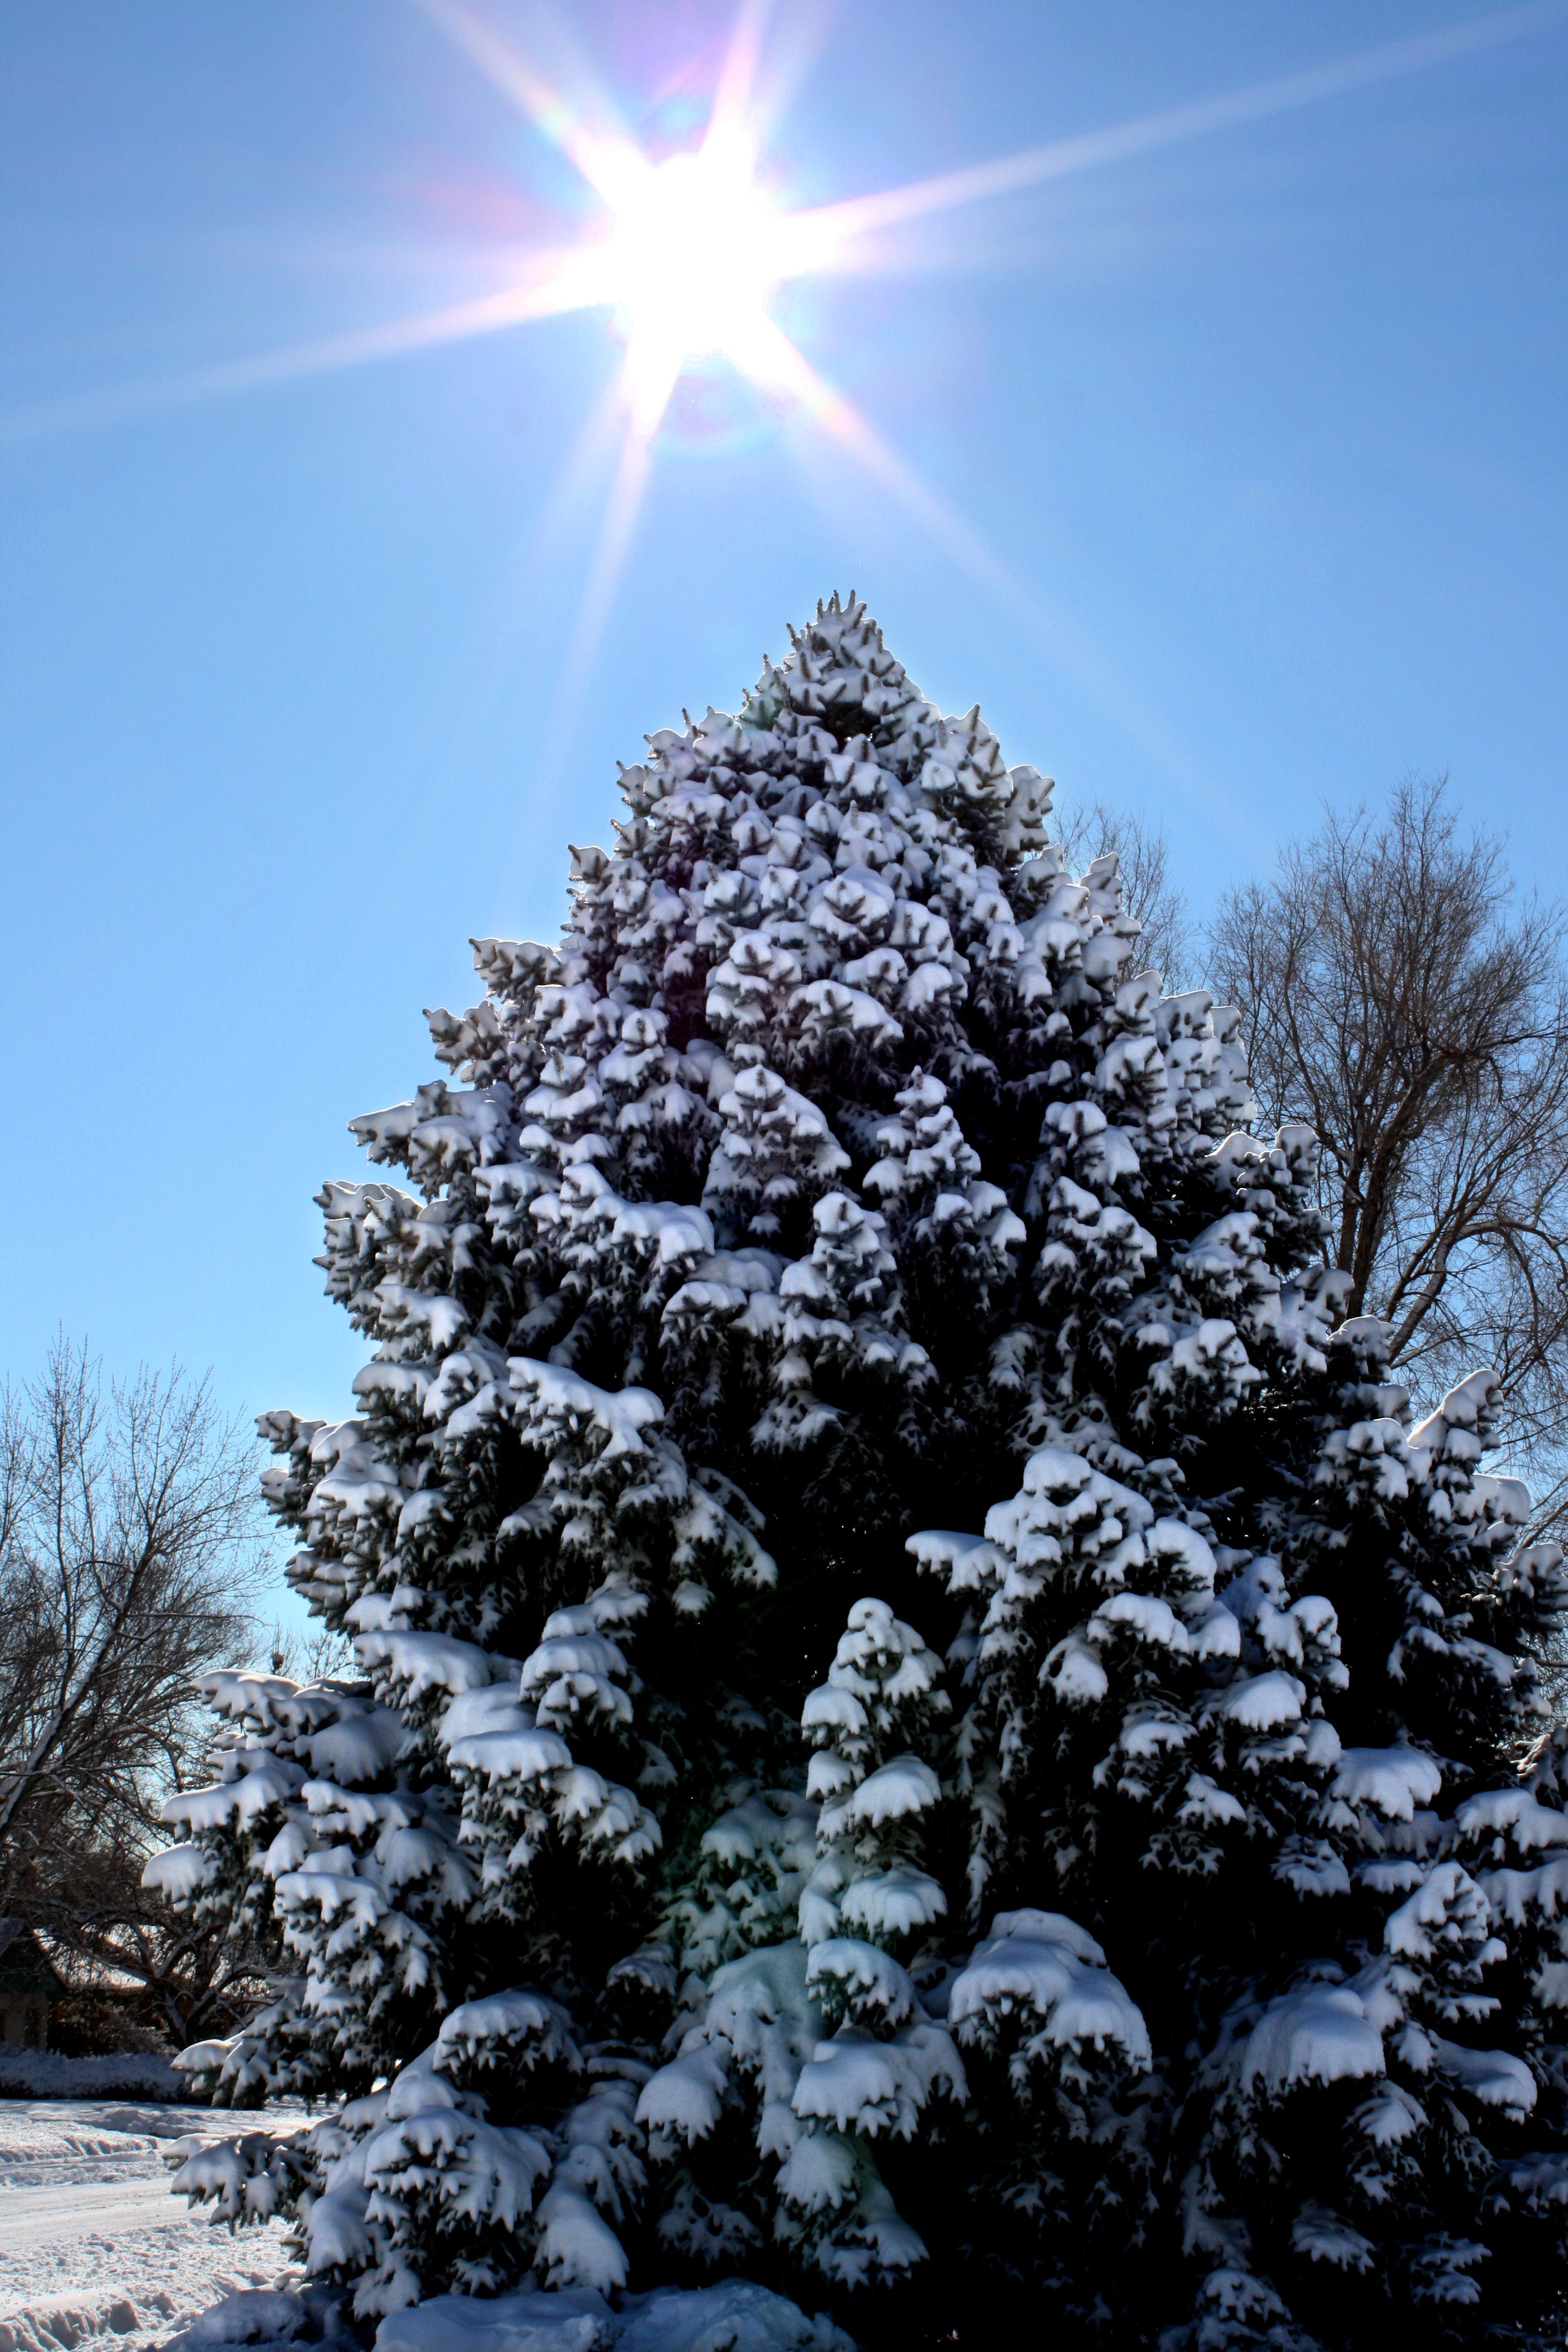 Drawn pine tree snow covered tree Photos Pictures Covered Winter Trees